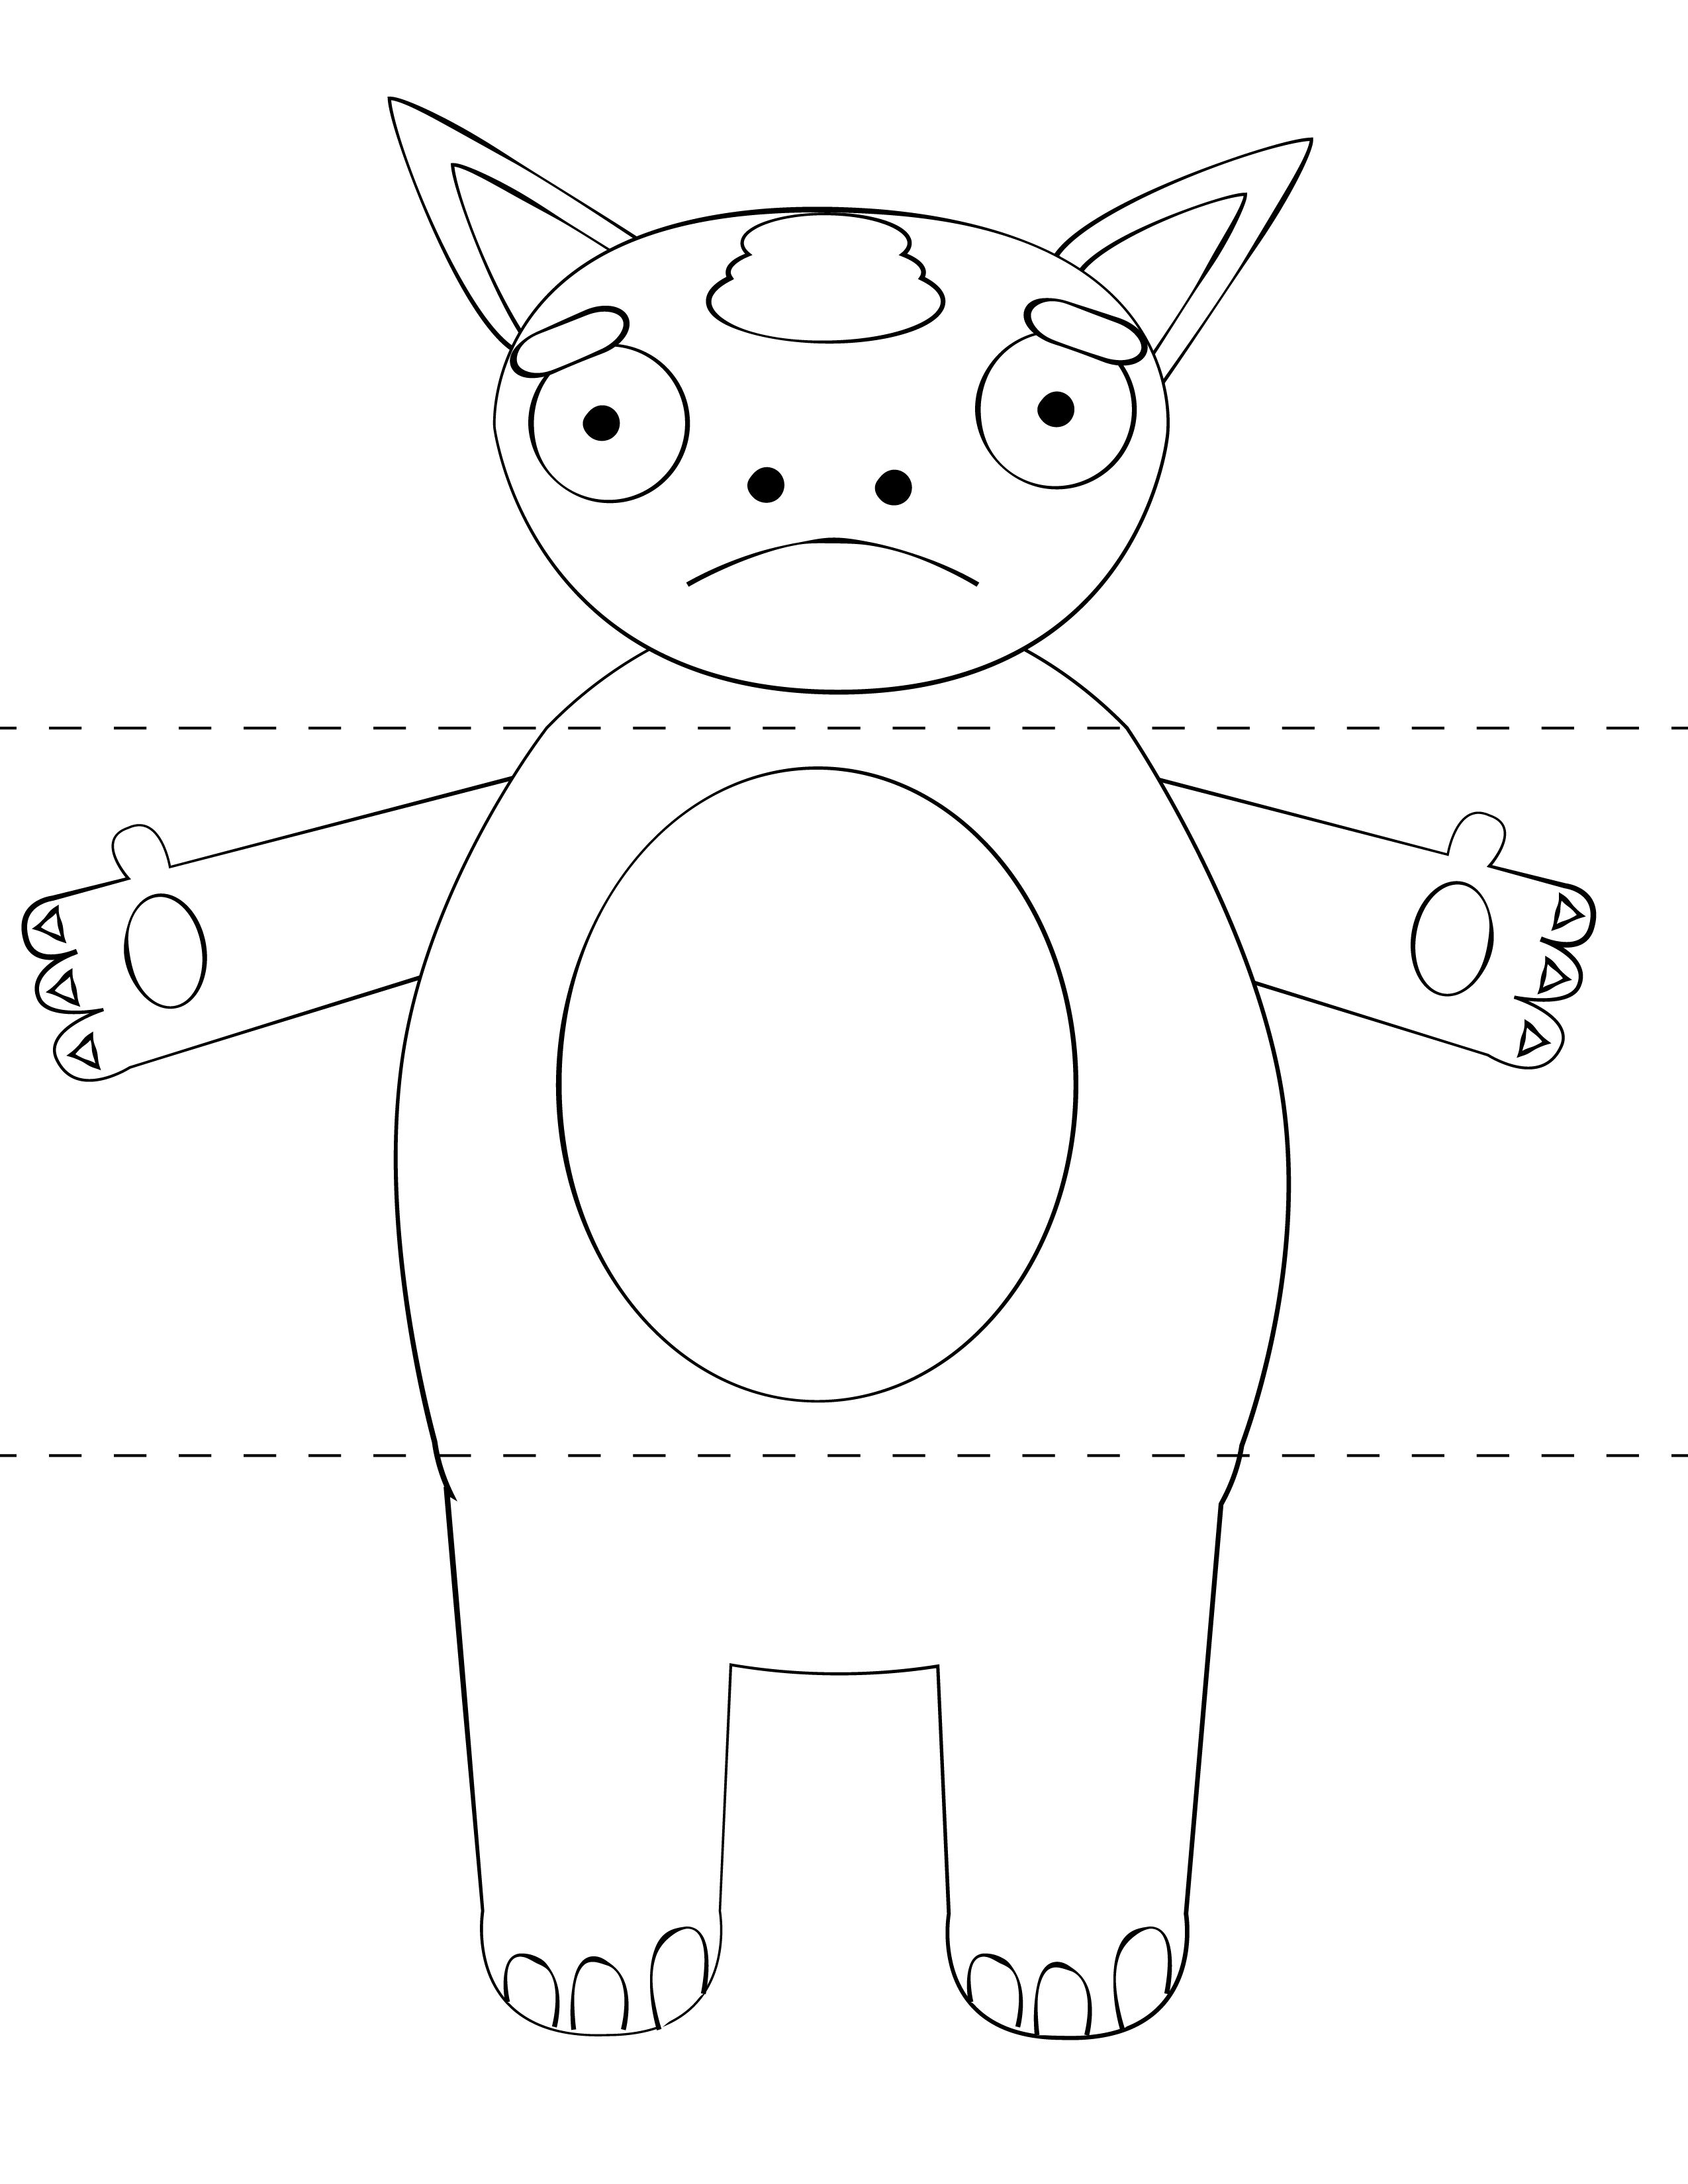 Free Kids Craft Template Make Your Own Monsters